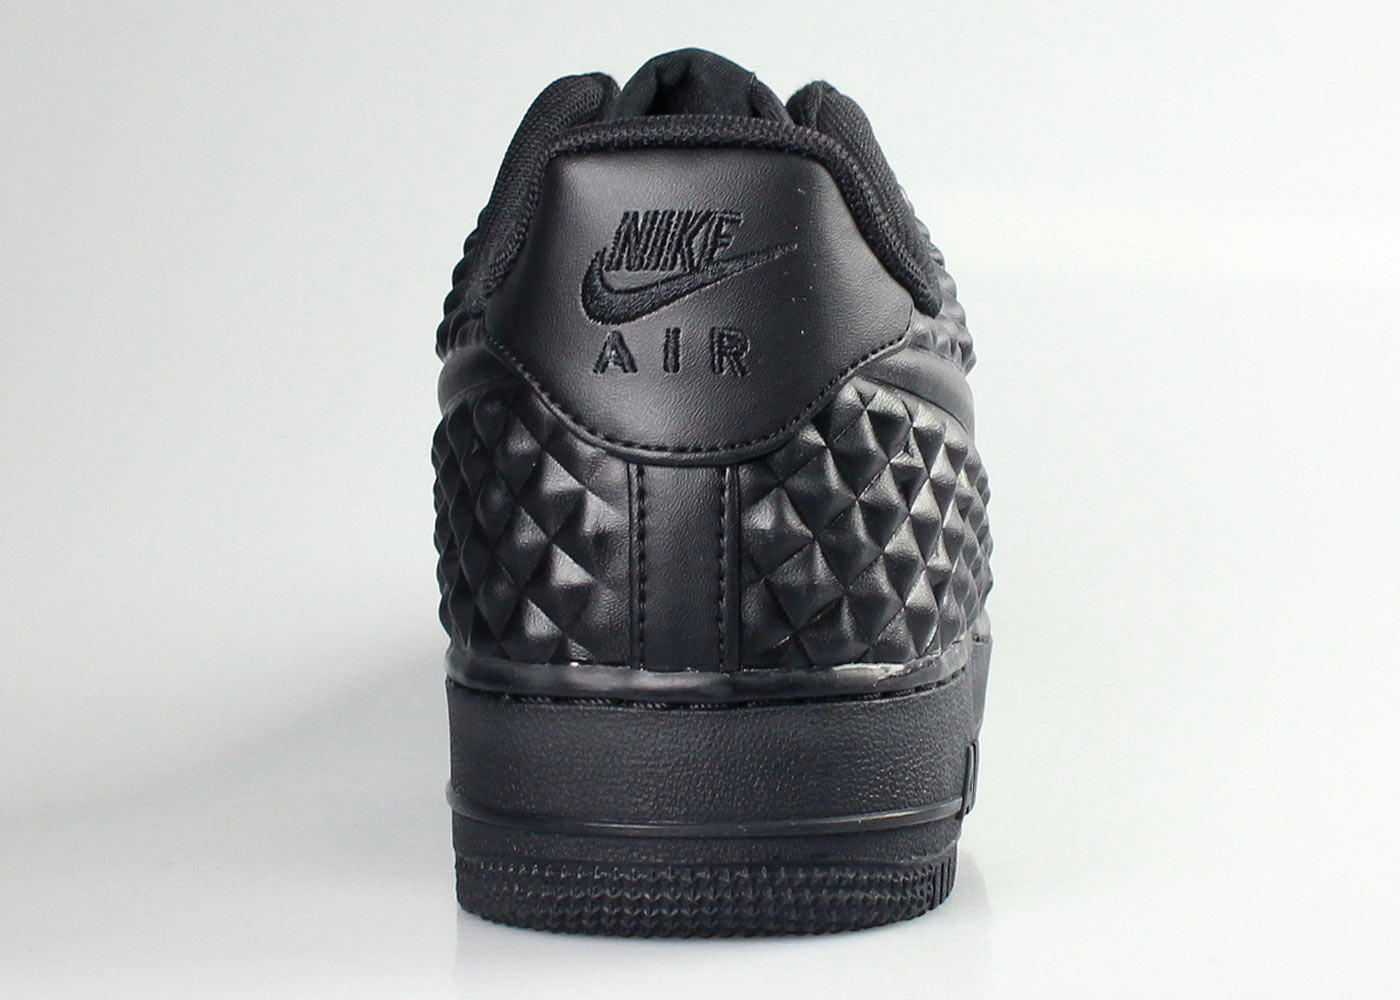 ... 93b4b fd161 Nike Mens Air Force 1 Low LV8 VT Independence Day Pack -  Black special ... 4c36ab322